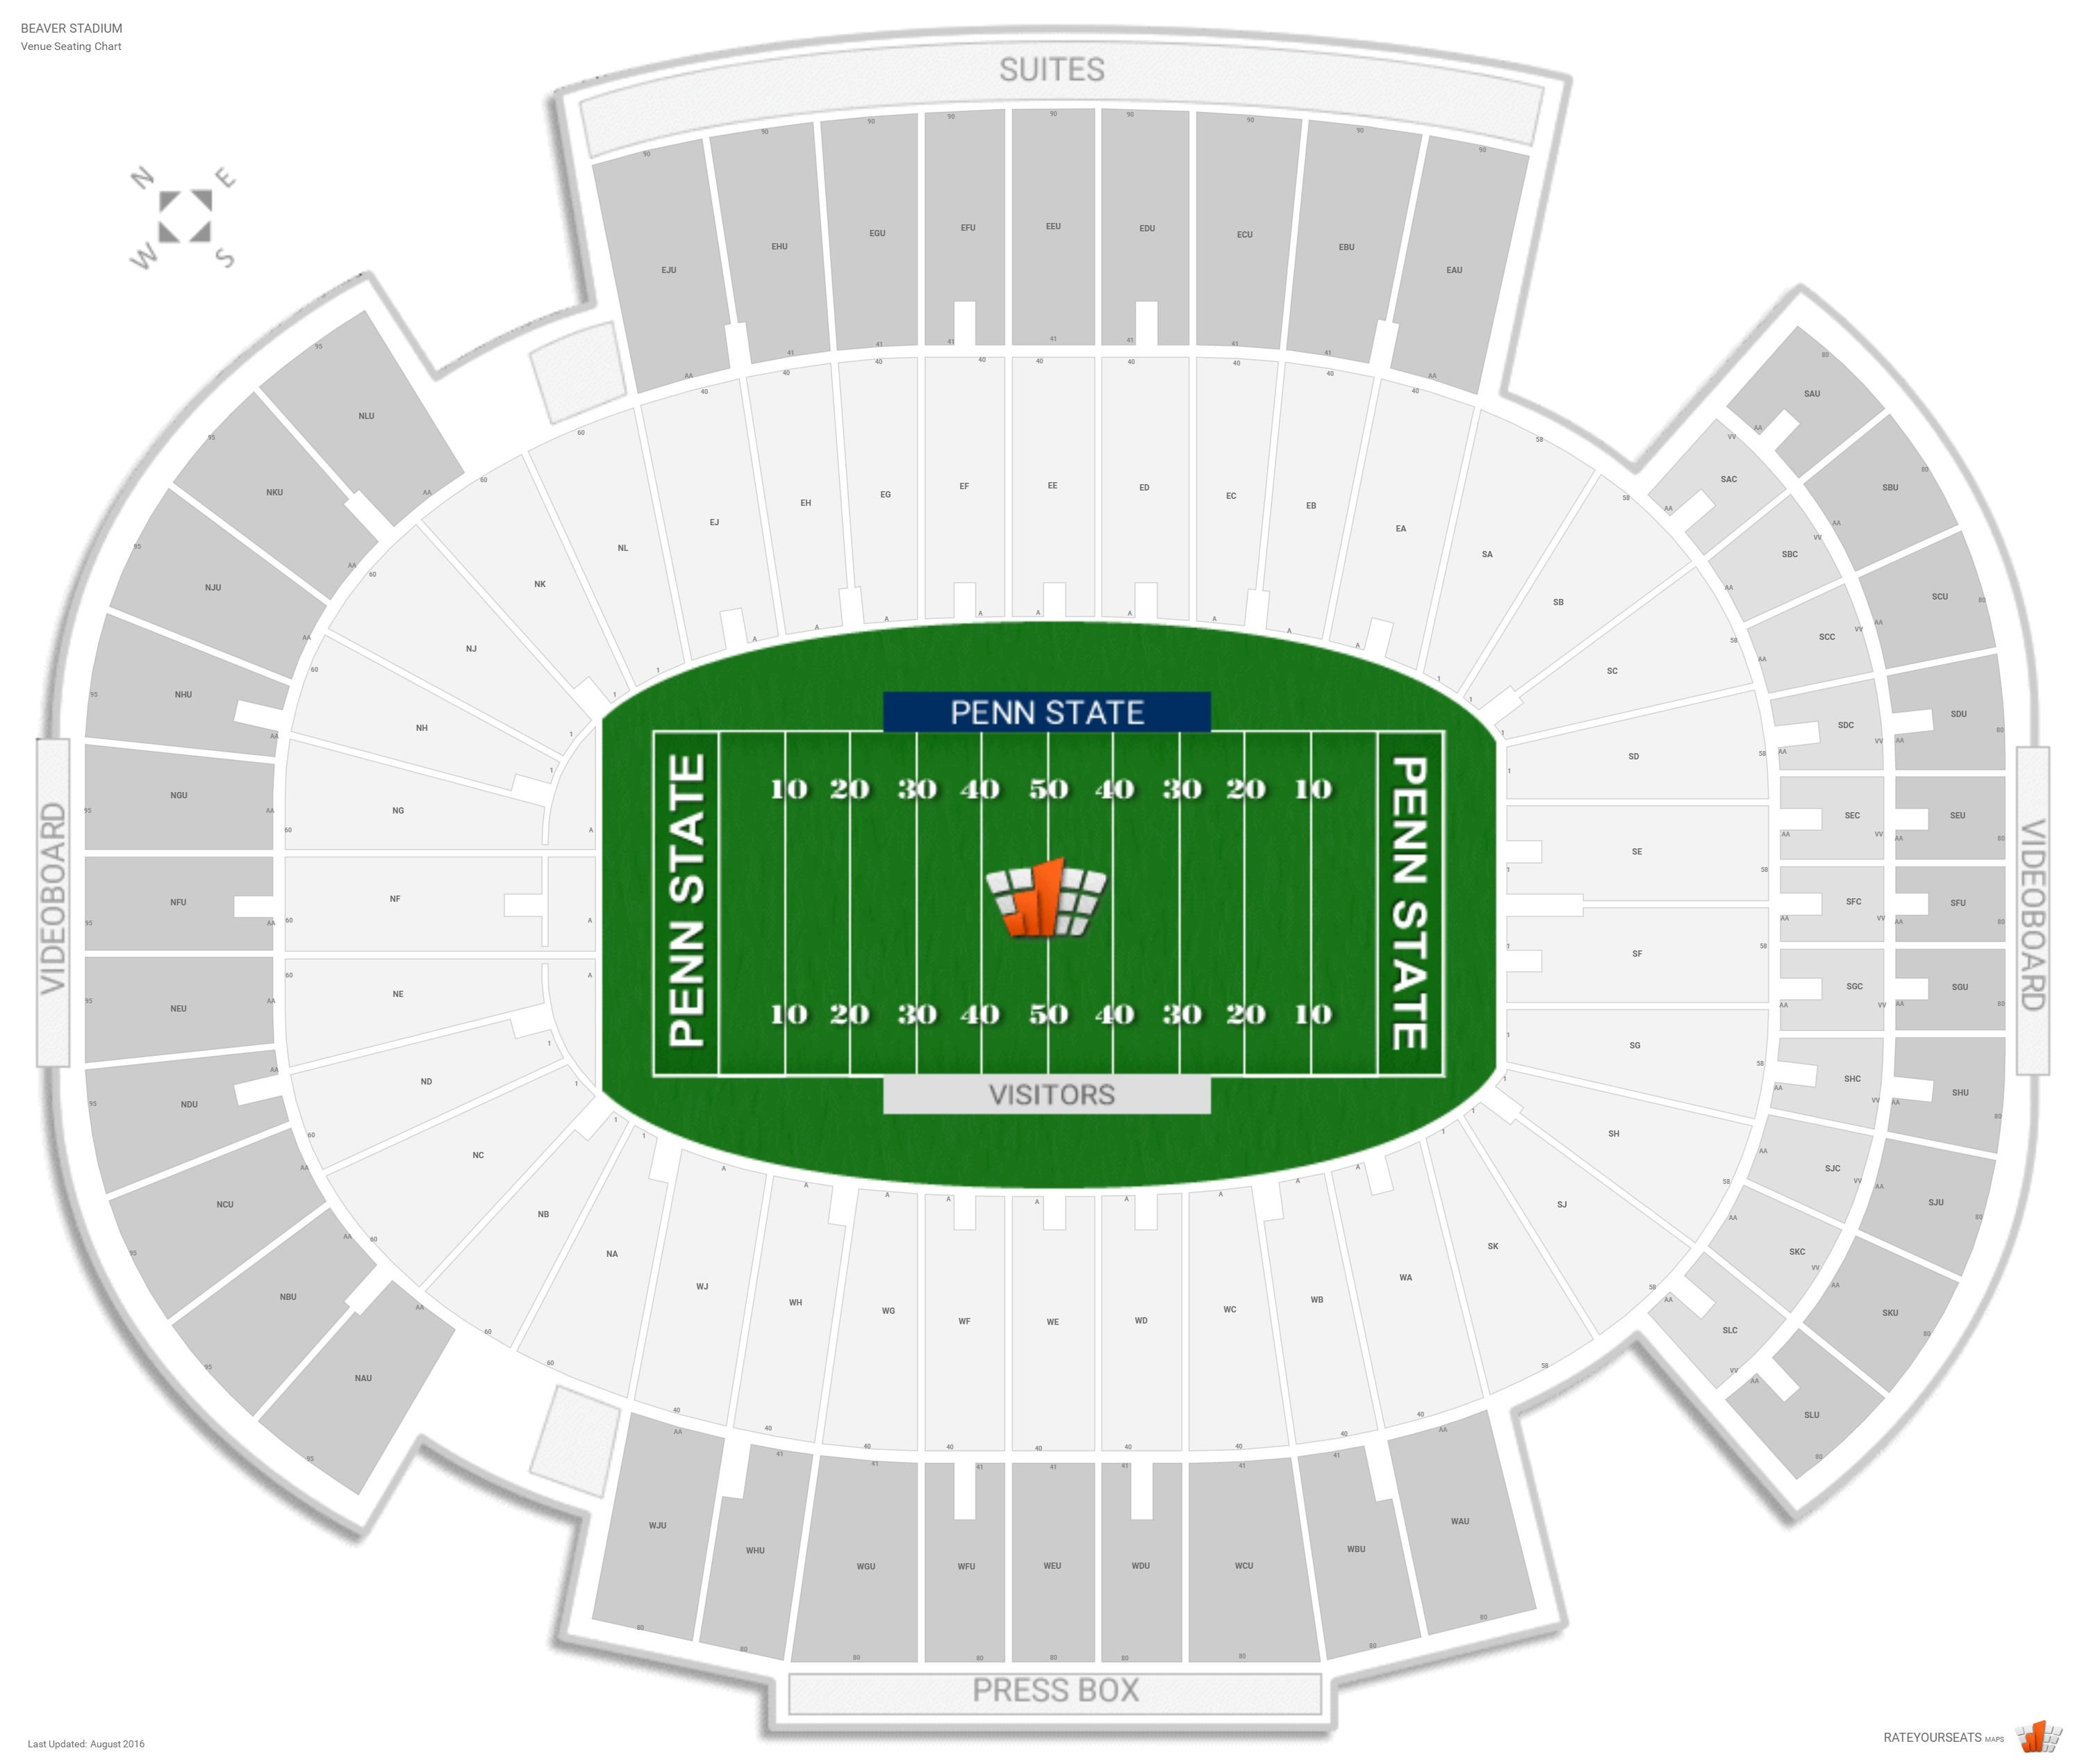 Beaver stadium penn state seating guide rateyourseats com